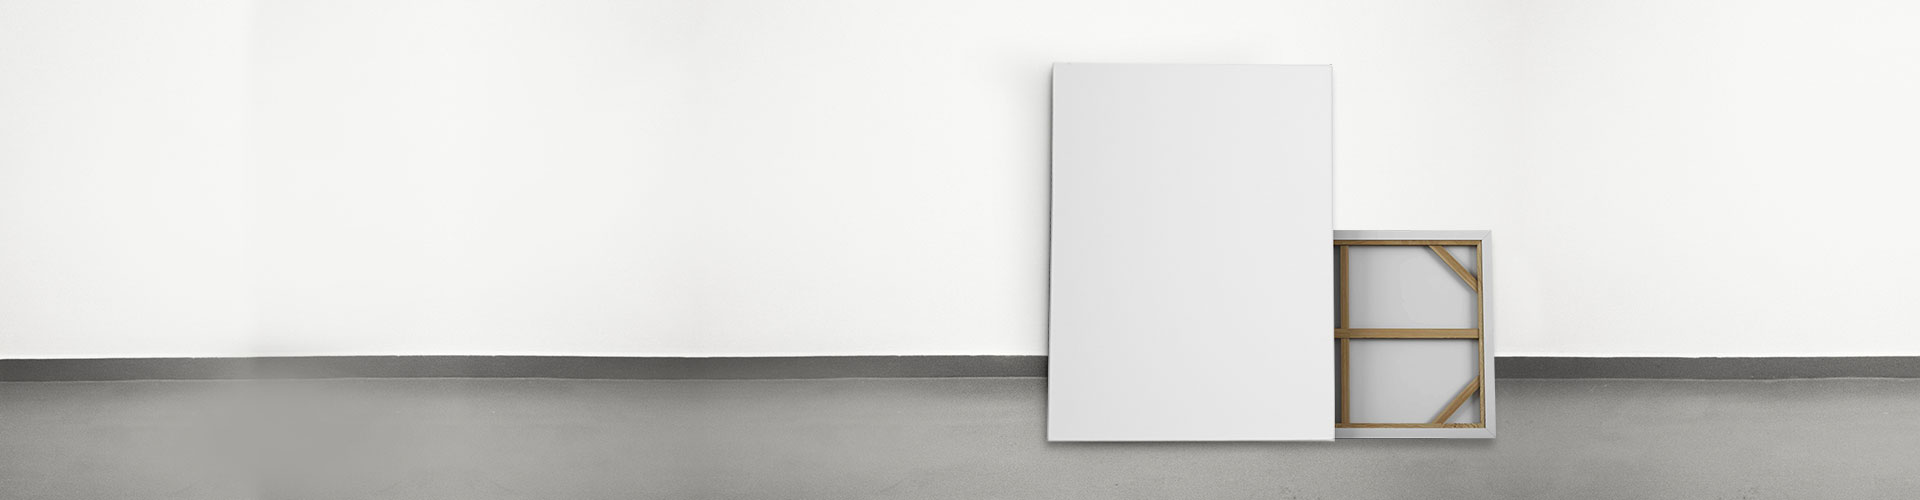 BLANK PRE-STRETCHED CANVAS